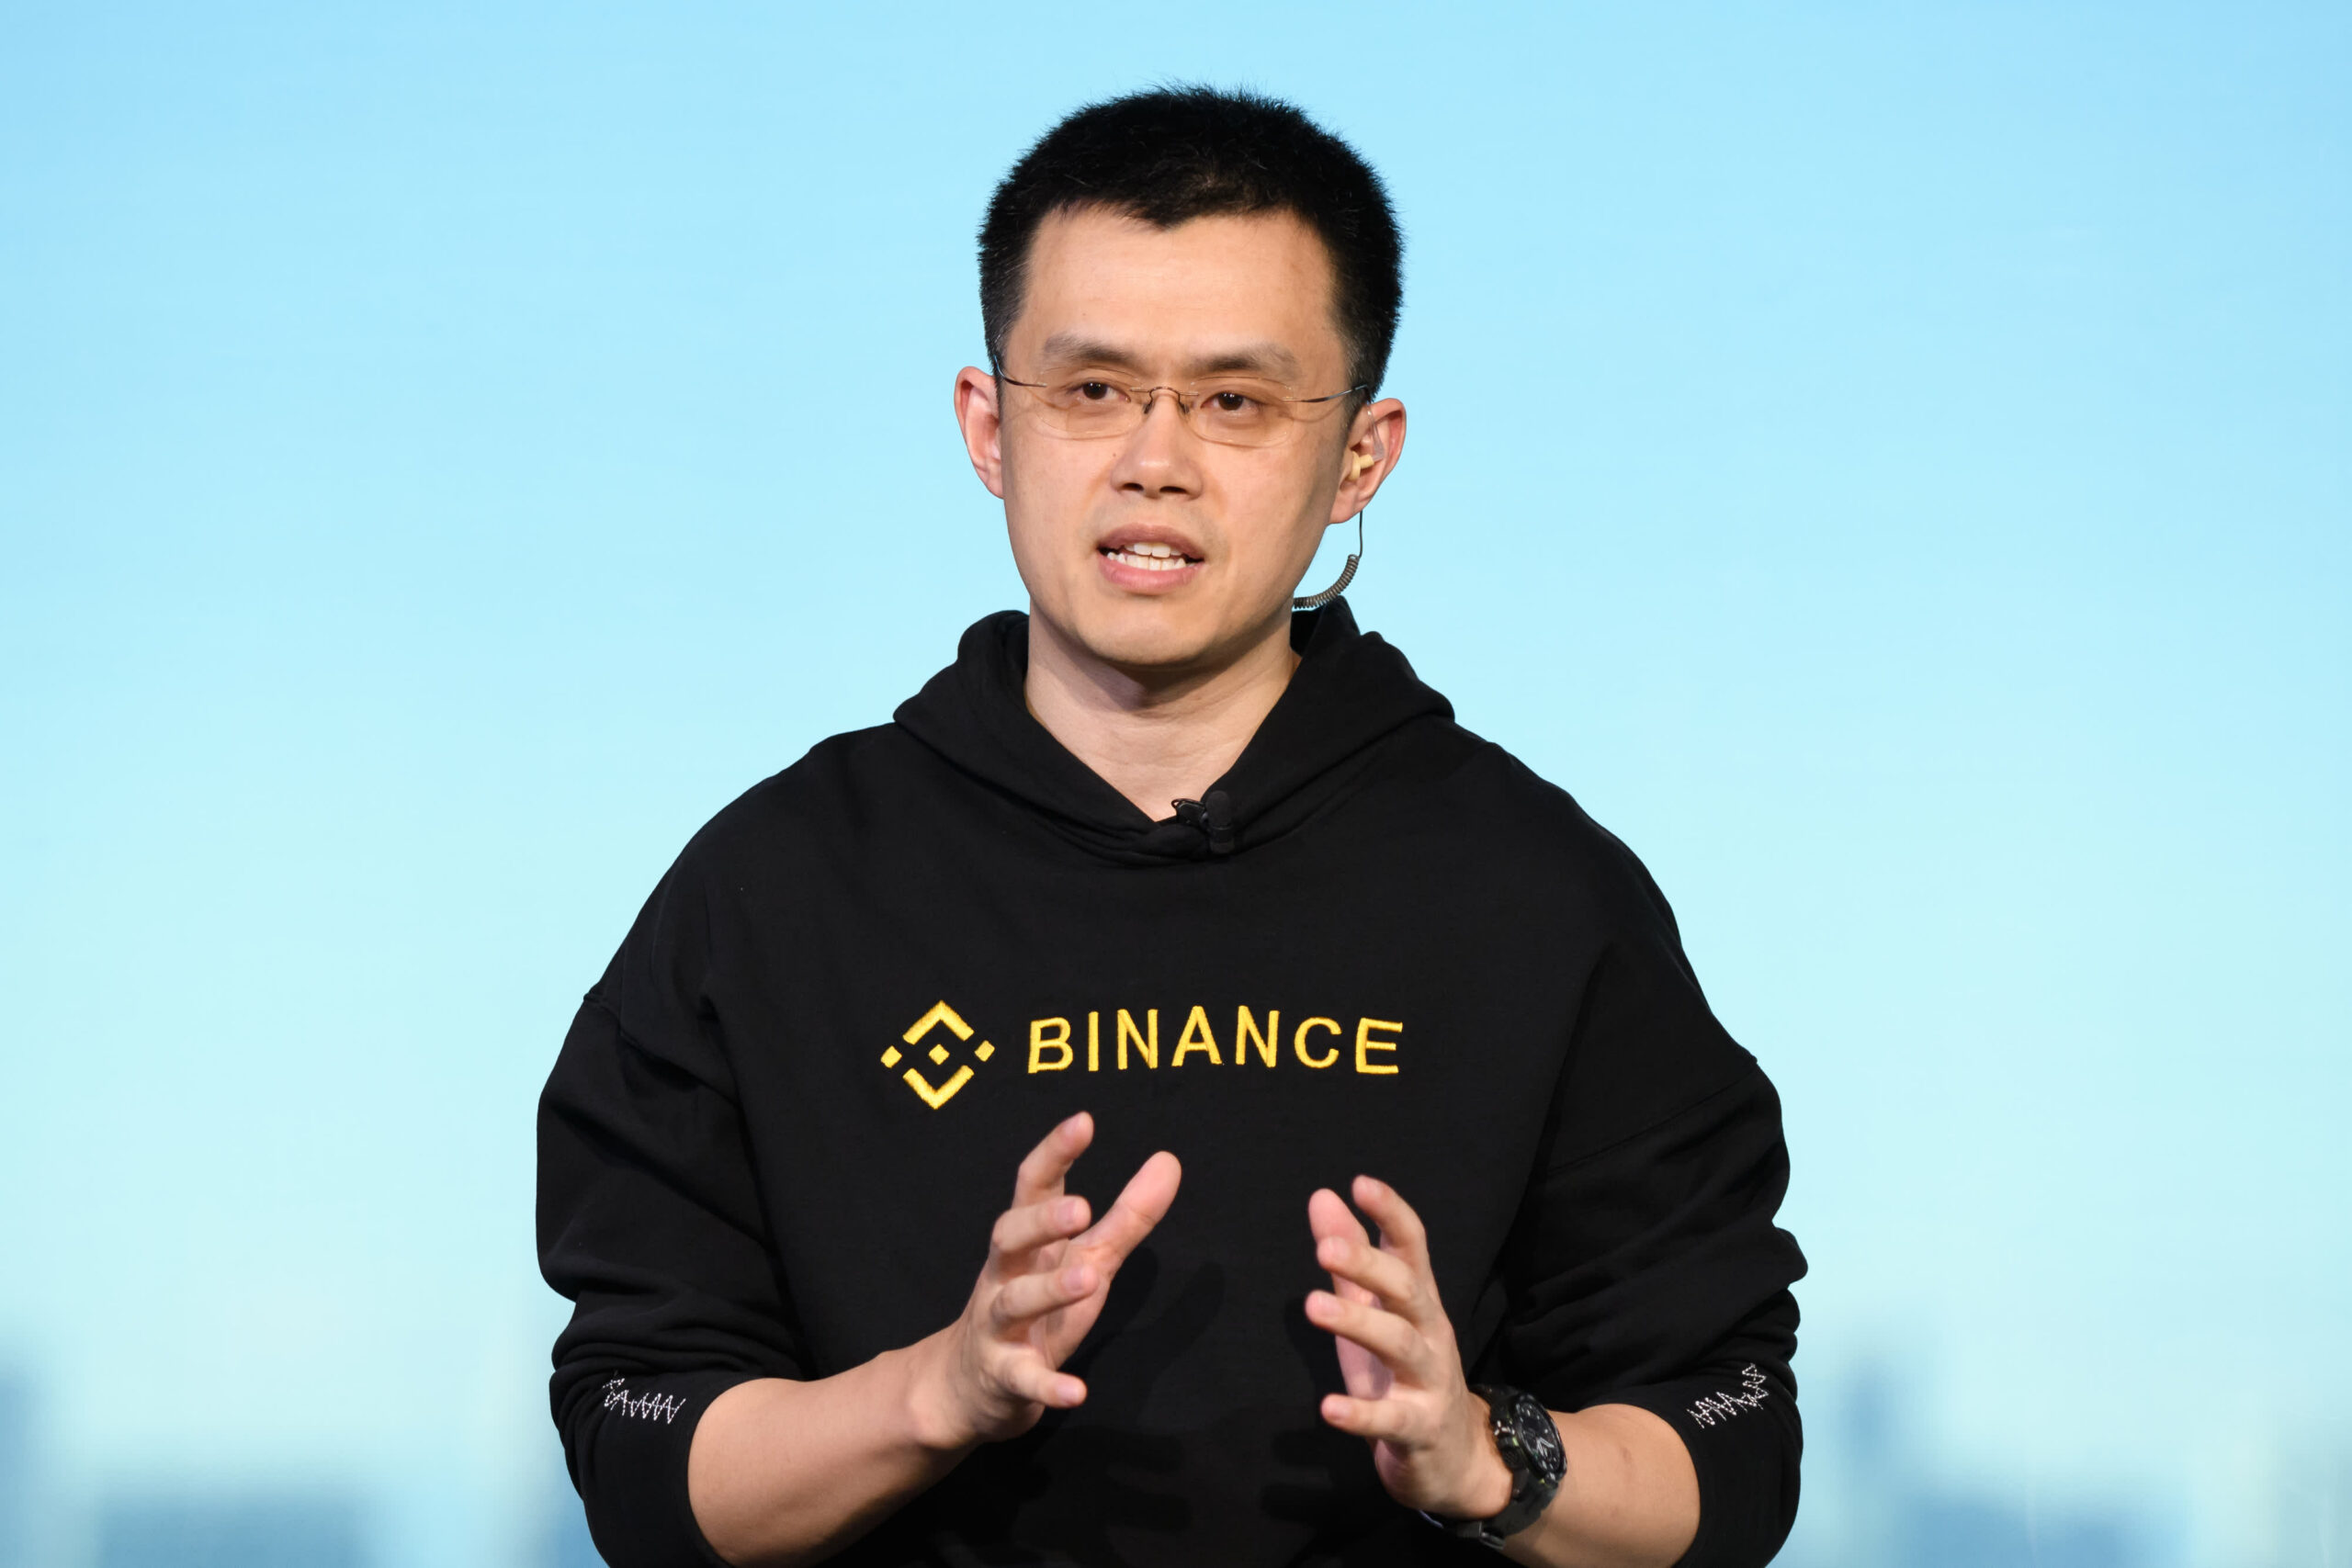 Binance CEO says prepared to step down amid crypto crackdown